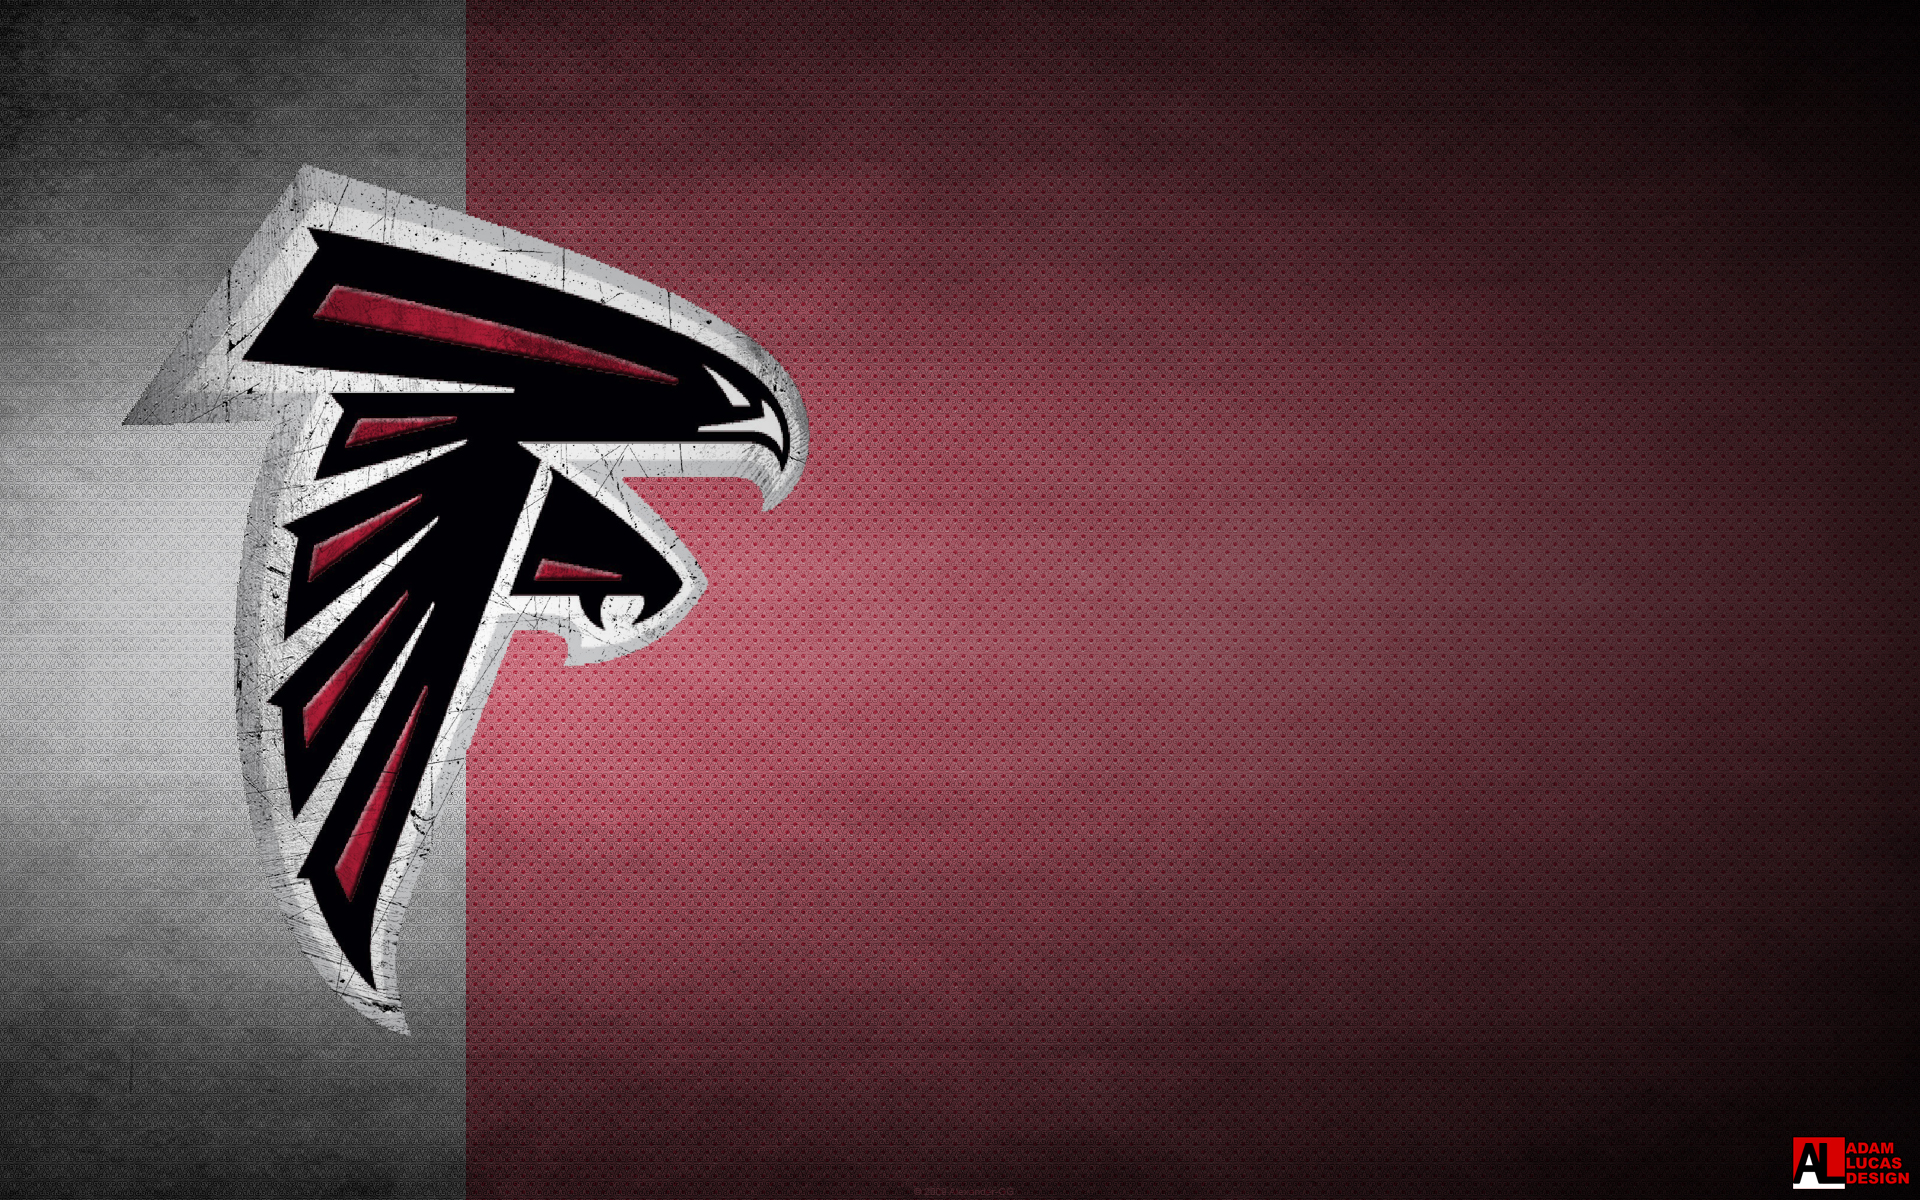 Atlanta Falcon Wallpapers Group 60: 16 Atlanta Falcons Wallpapers